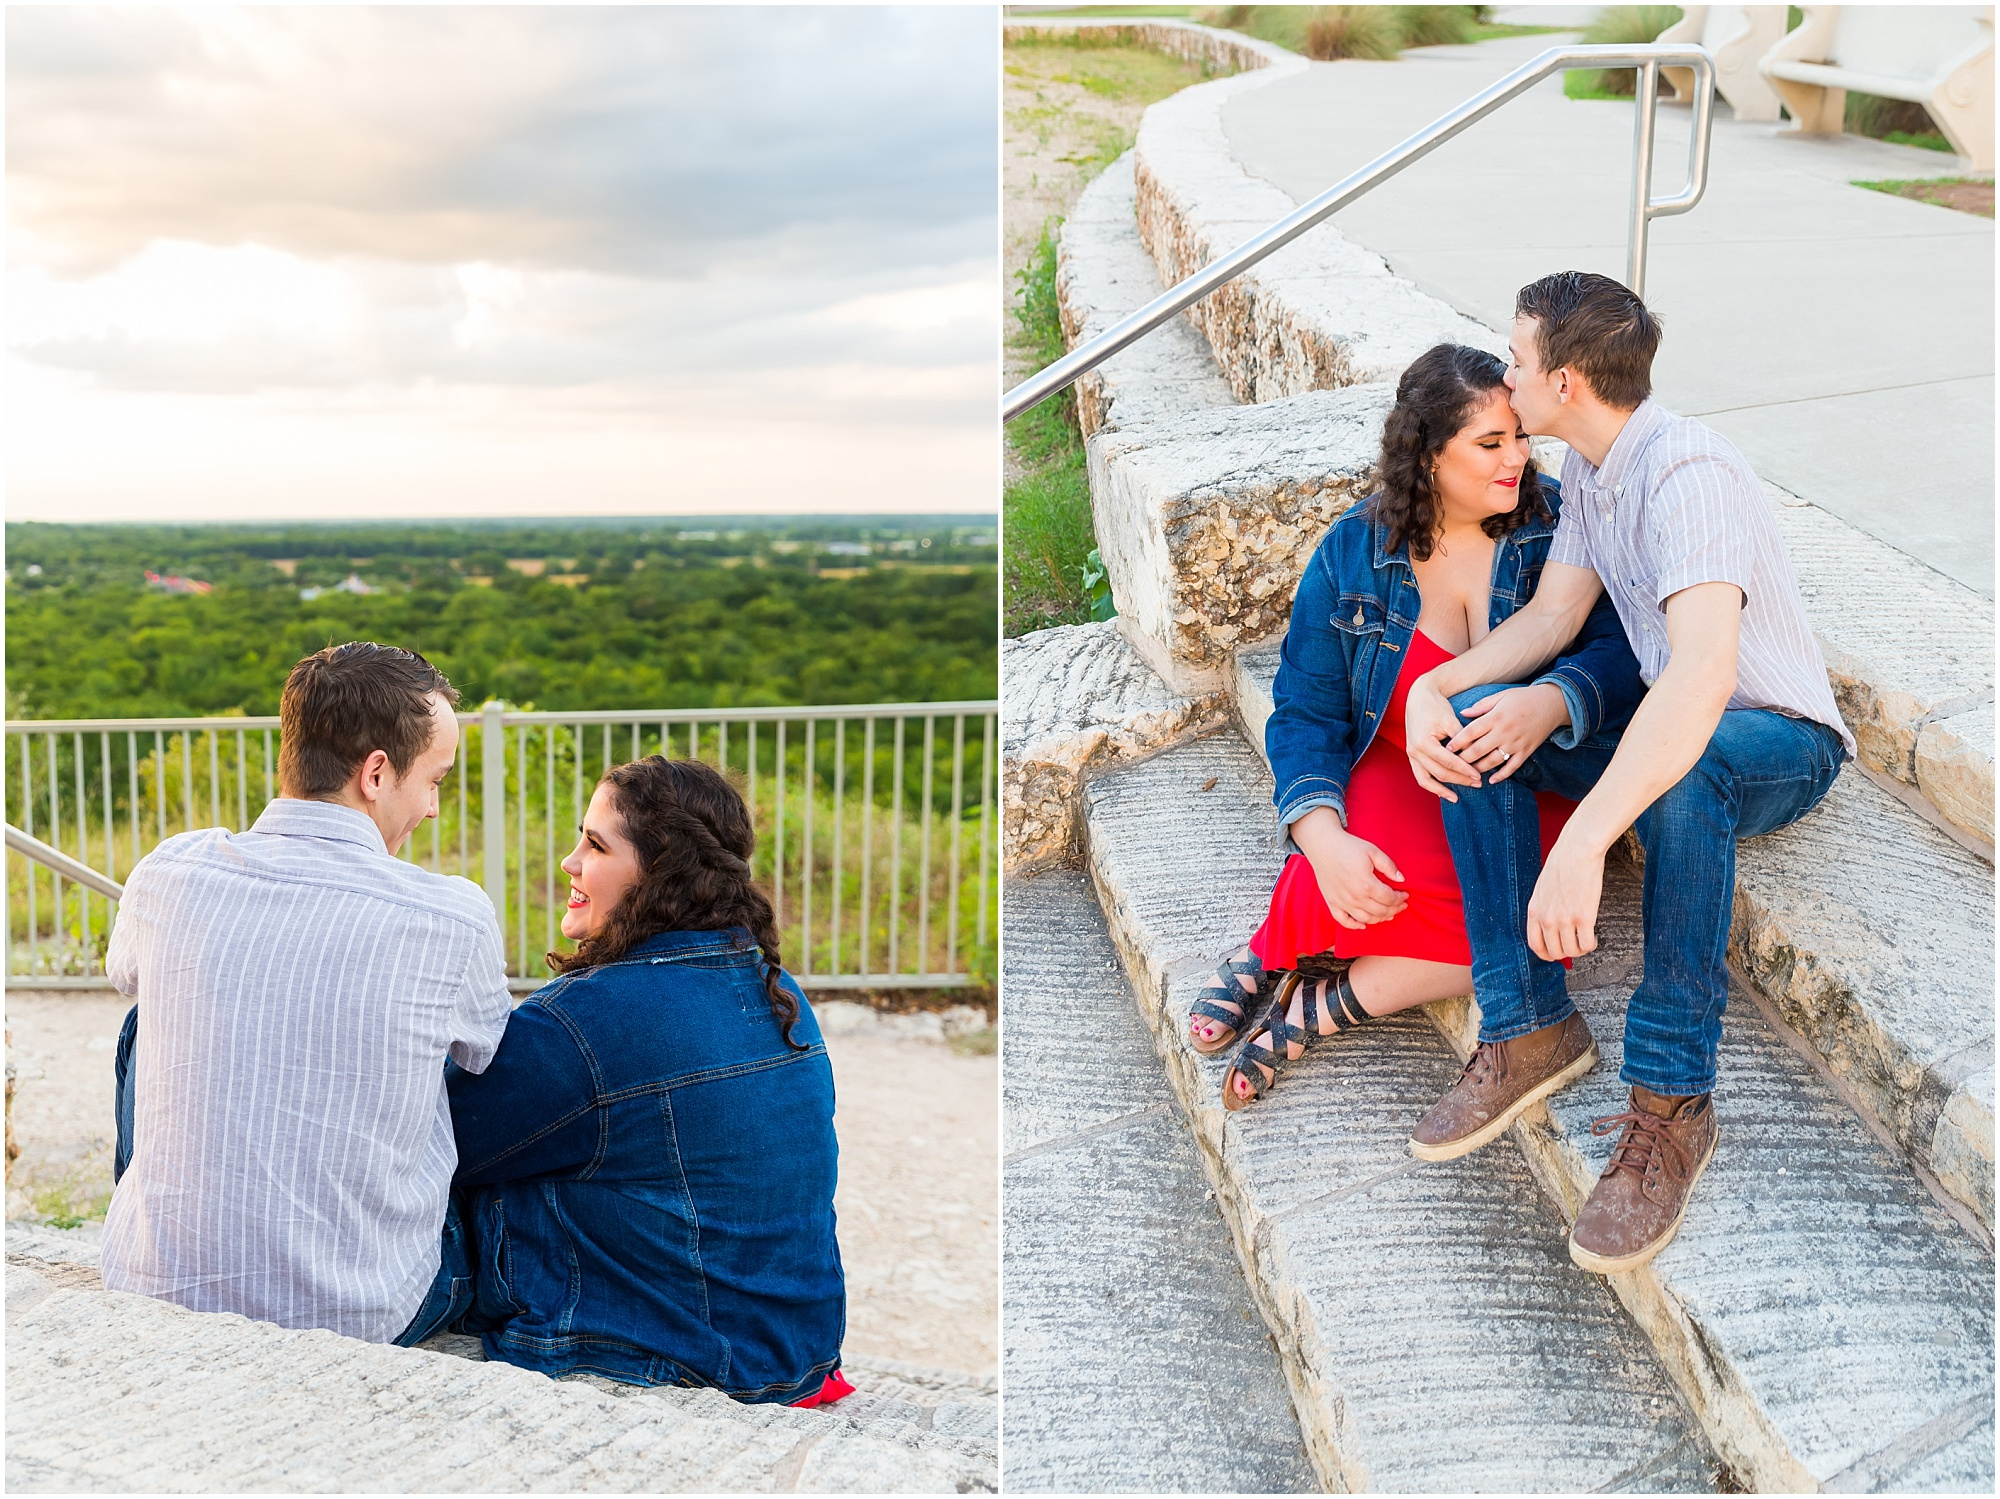 A man kisses his fiance's head as they sit on stone steps together in Cameron Park - Jason & Melaina Photography - www.jasonandmelaina.com